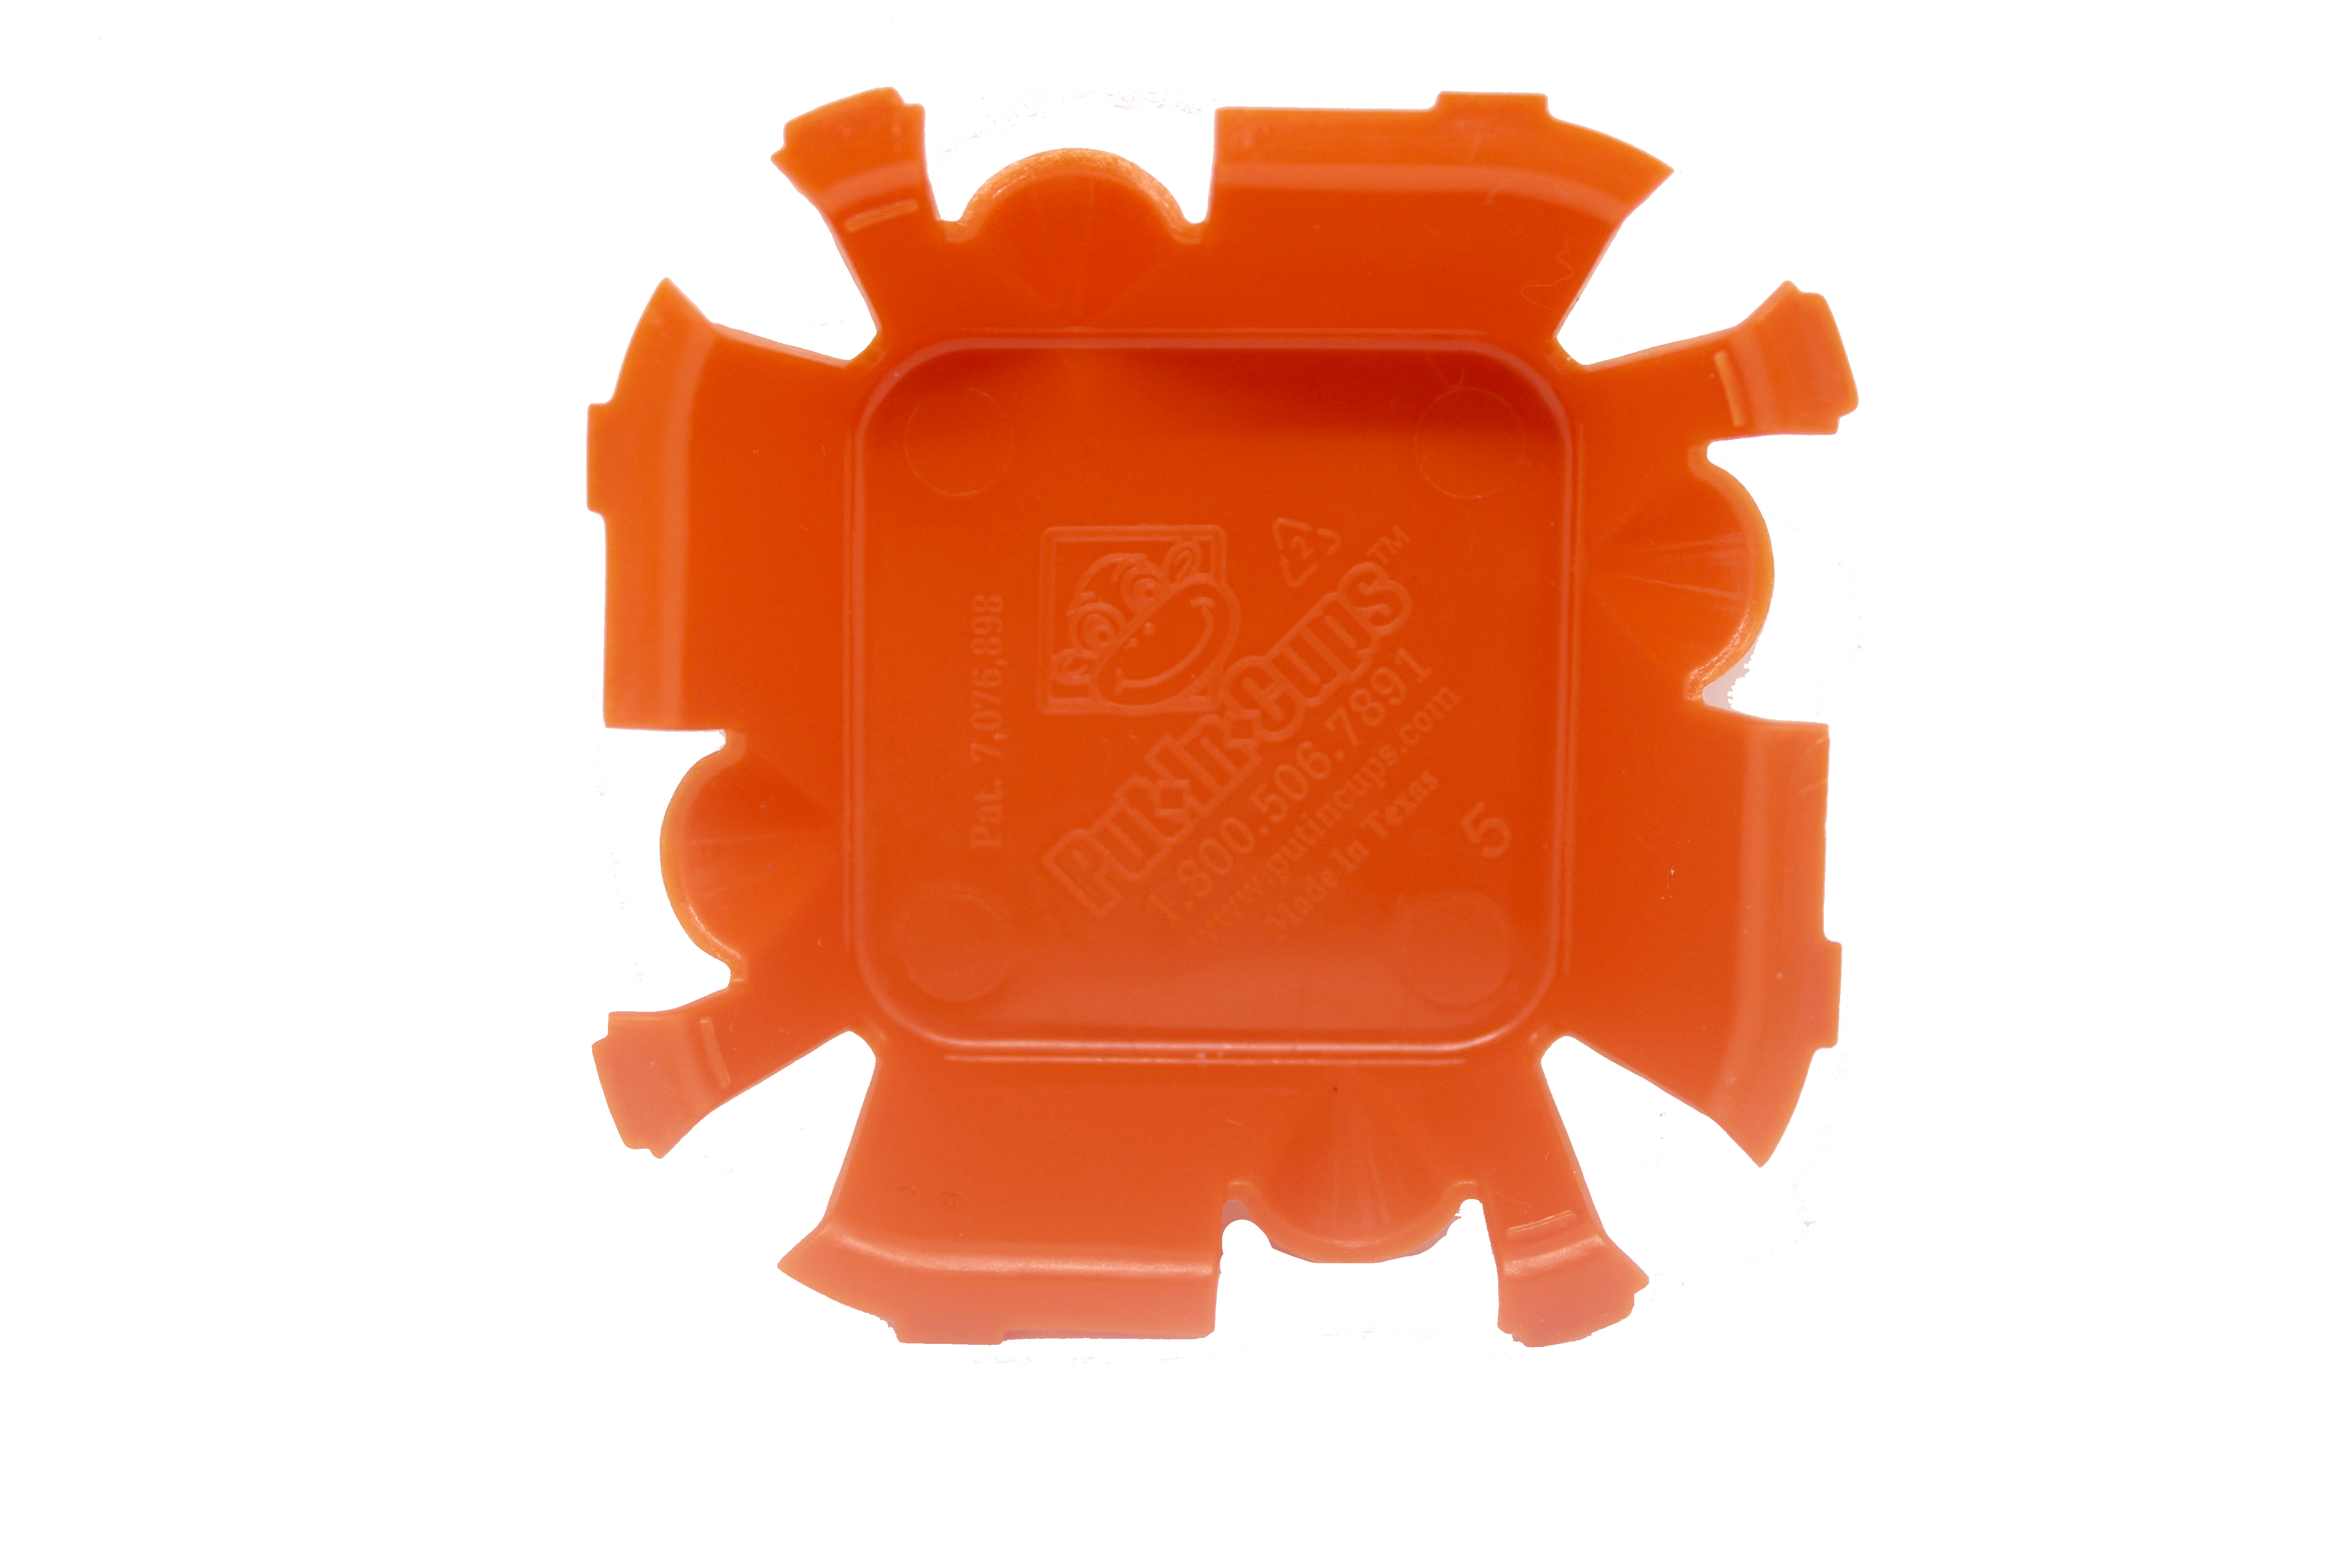 Orange Sleeve (50 Cups per Sleeve)